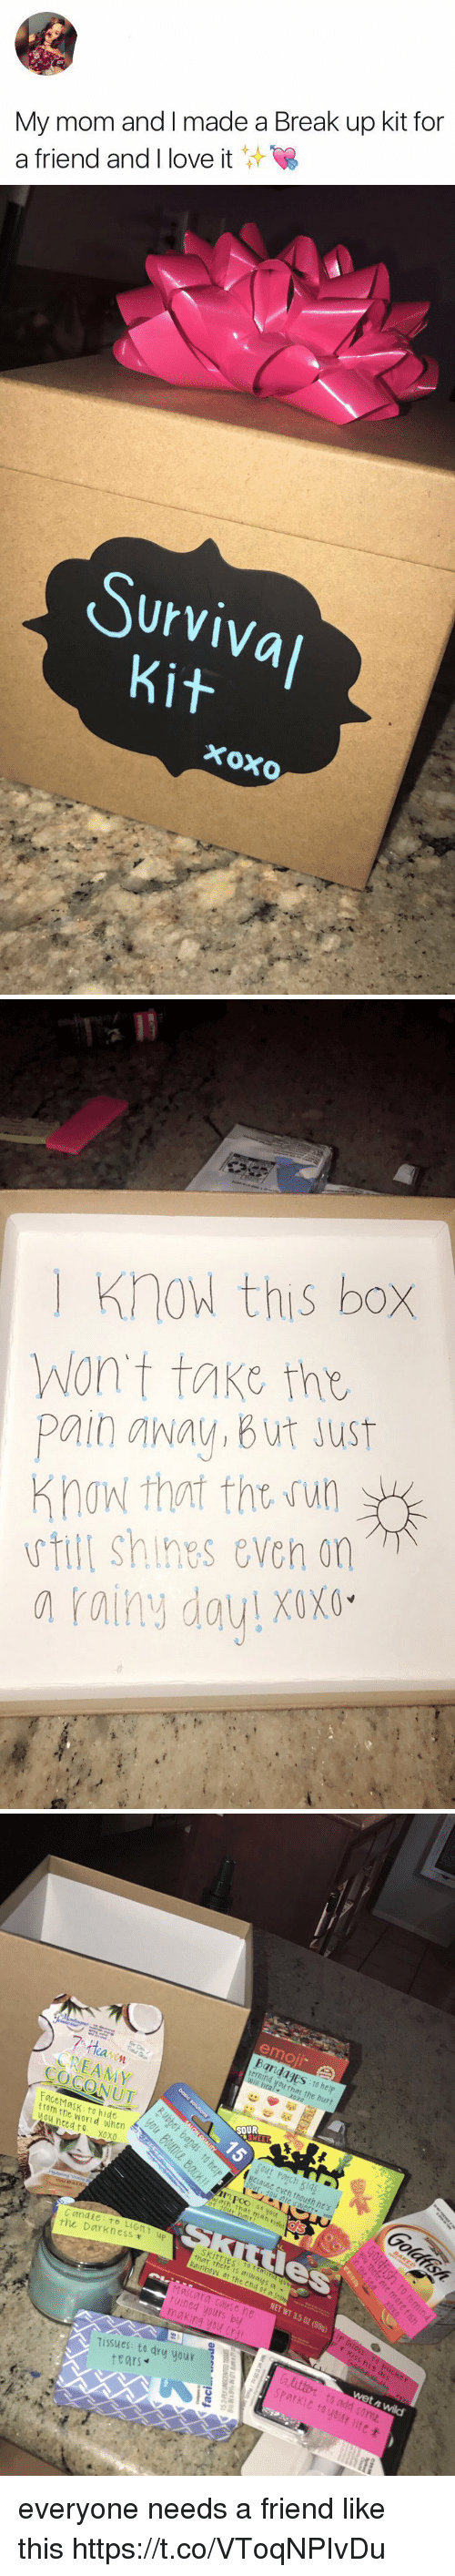 andie: My mom and I made a Break up kit for  a friend and I love it   Surviva  kit  xoxo   Know this box  Won't take the  Pain away, B ut Just  Know that th un  till shines even on  rainy dau! XOXO   emO  Bandages to help  emind you that the hurt  7 Haven  CREAMY  COCONUT  SOUR  FaceMasK: to hide b  from the Worid When lds  ou needto. xoxo  our parch Kids  ccause cveh though ht's  POO  wash that man right  C andie To LIGITT up  the Darkness . up  that there IS g:ways a  9  ainbów at the end of a Sto  ET WT 3.5 02 (99g)  Mascara couse he  ruined yours buy  making you Crd  Tissues: ta dry your  sparkle to your life  fears everyone needs a friend like this https://t.co/VToqNPIvDu